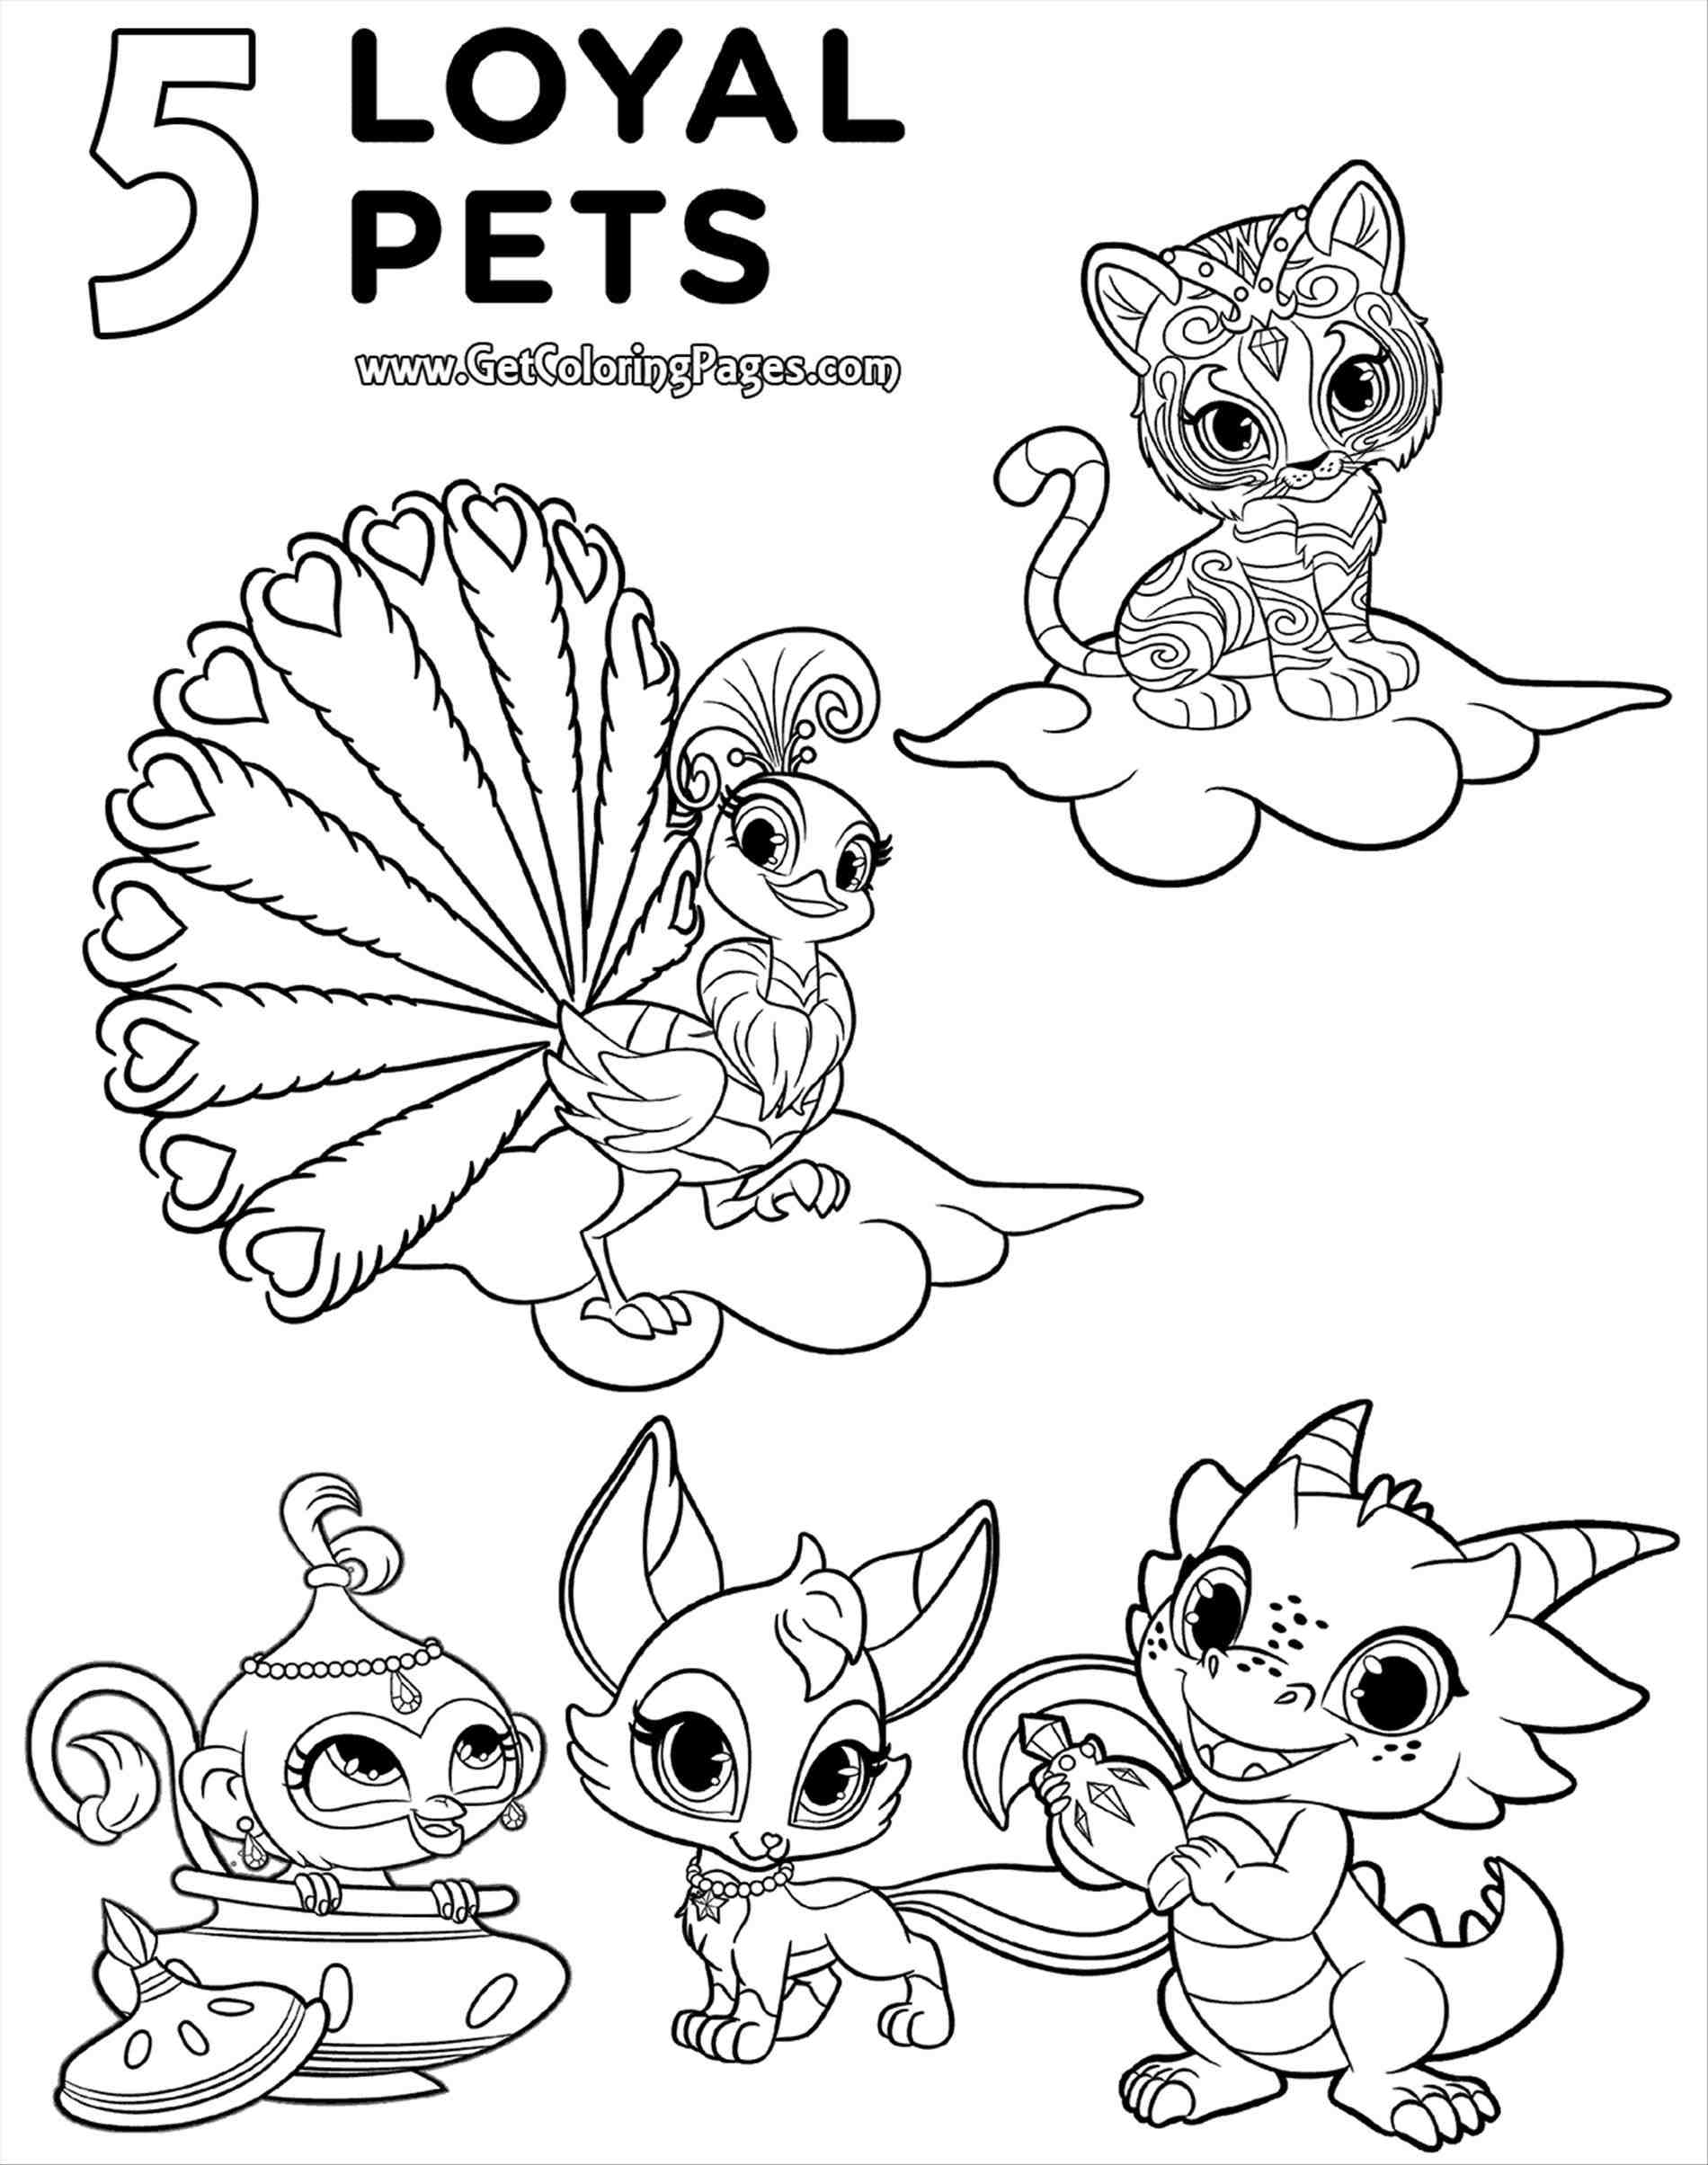 Loyal Pets Shimmer and Shine Coloring Pages